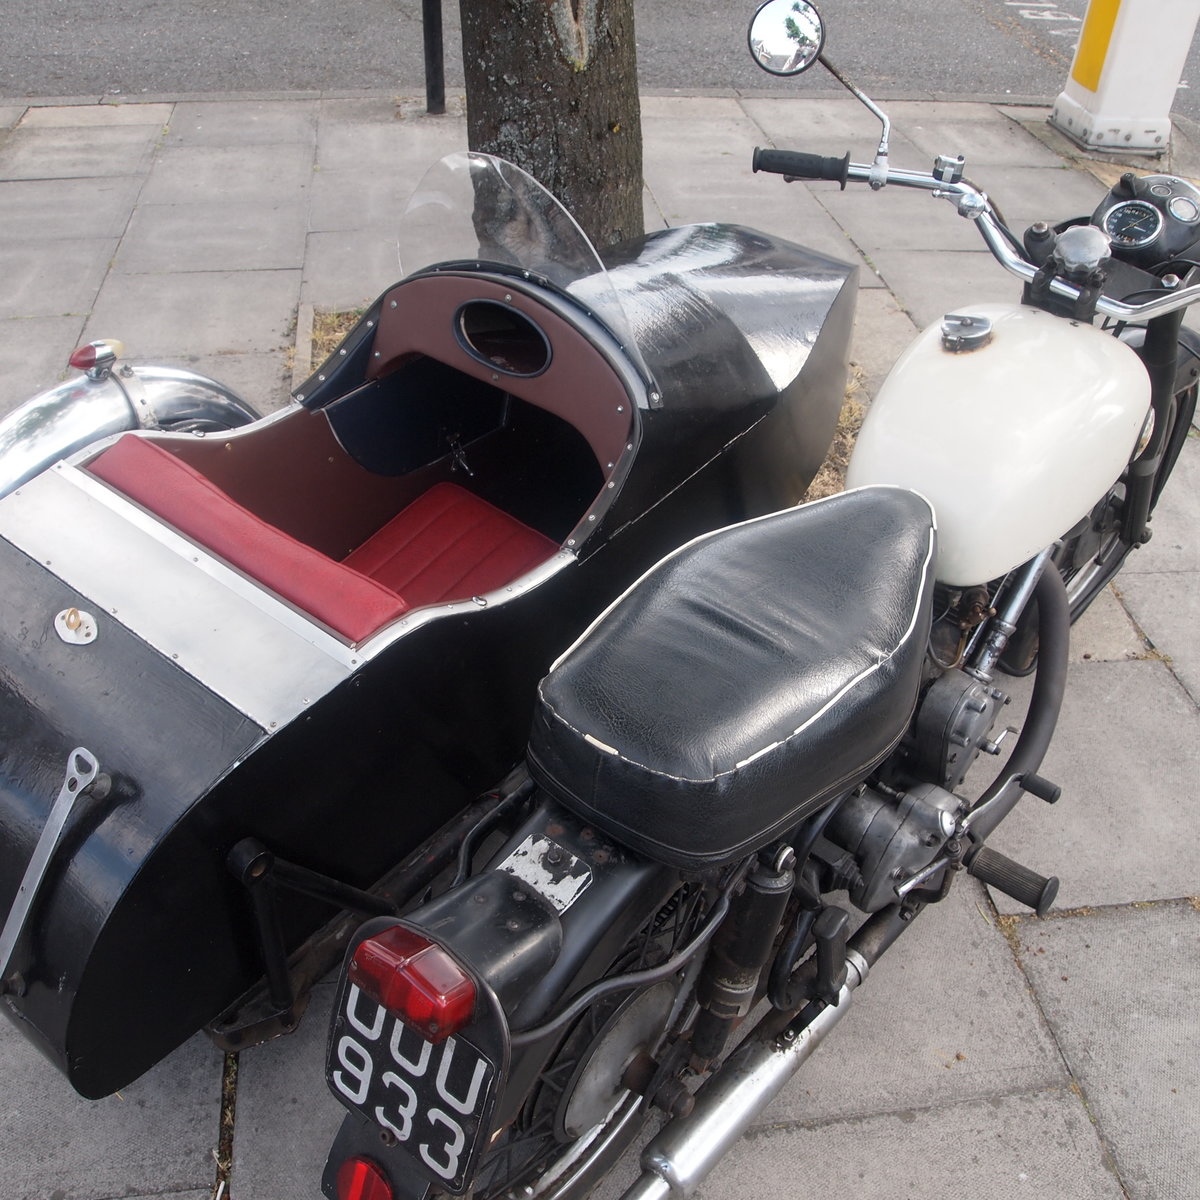 1956 P & M Panther M100 Fitted With 650cc Engine + Sidecar. For Sale (picture 5 of 6)